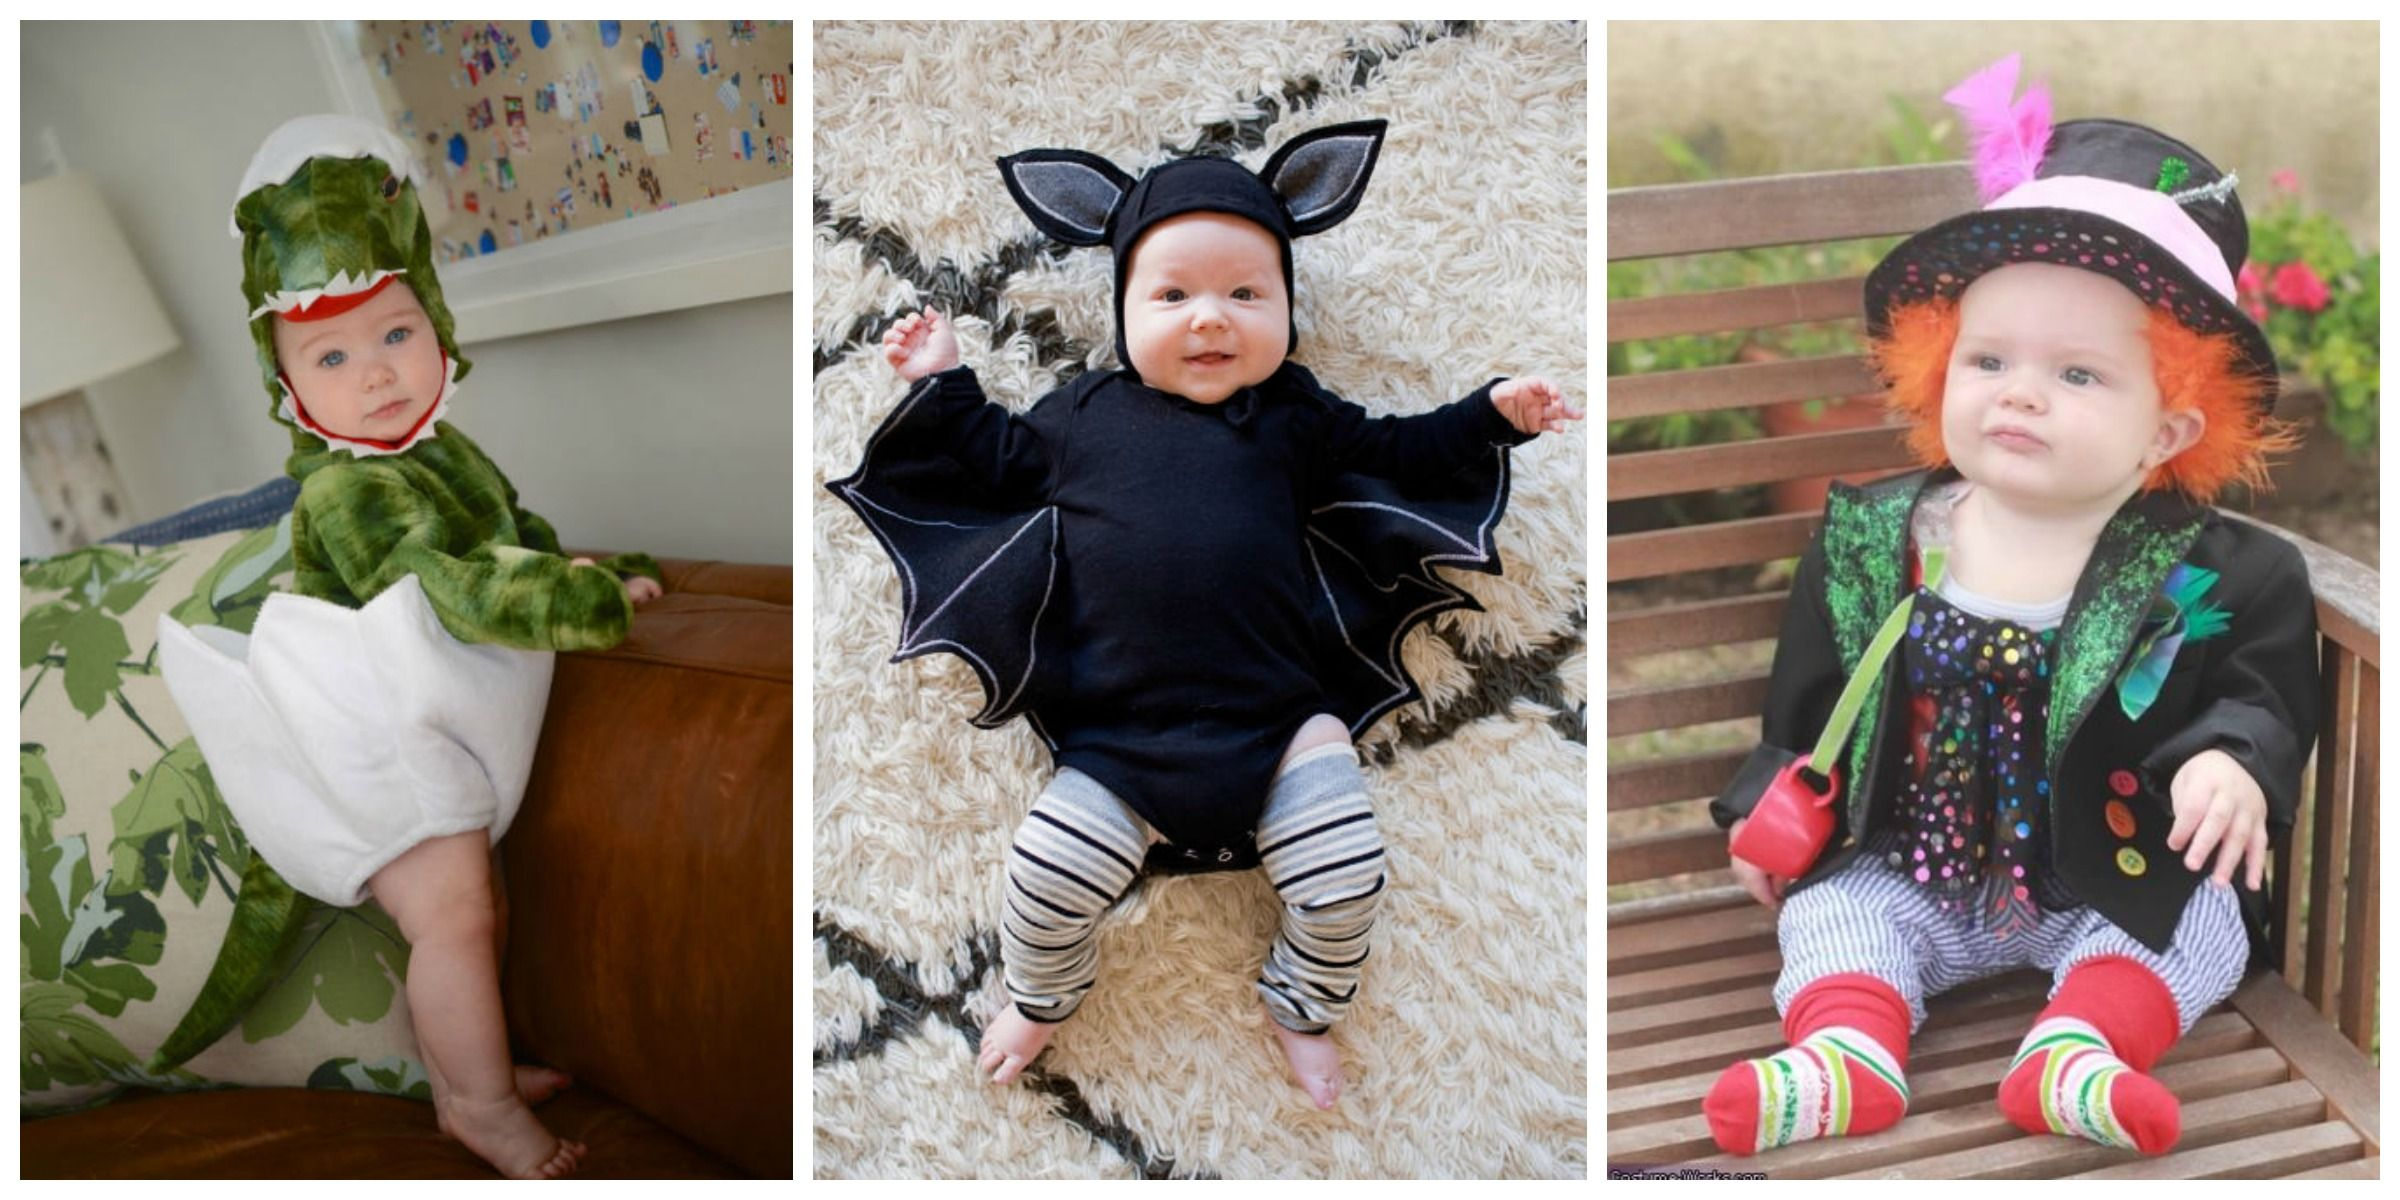 30 cute baby halloween costumes 2017 best ideas for boy and girl 30 cute baby halloween costumes 2017 best ideas for boy and girl infant and toddler costumes solutioingenieria Choice Image